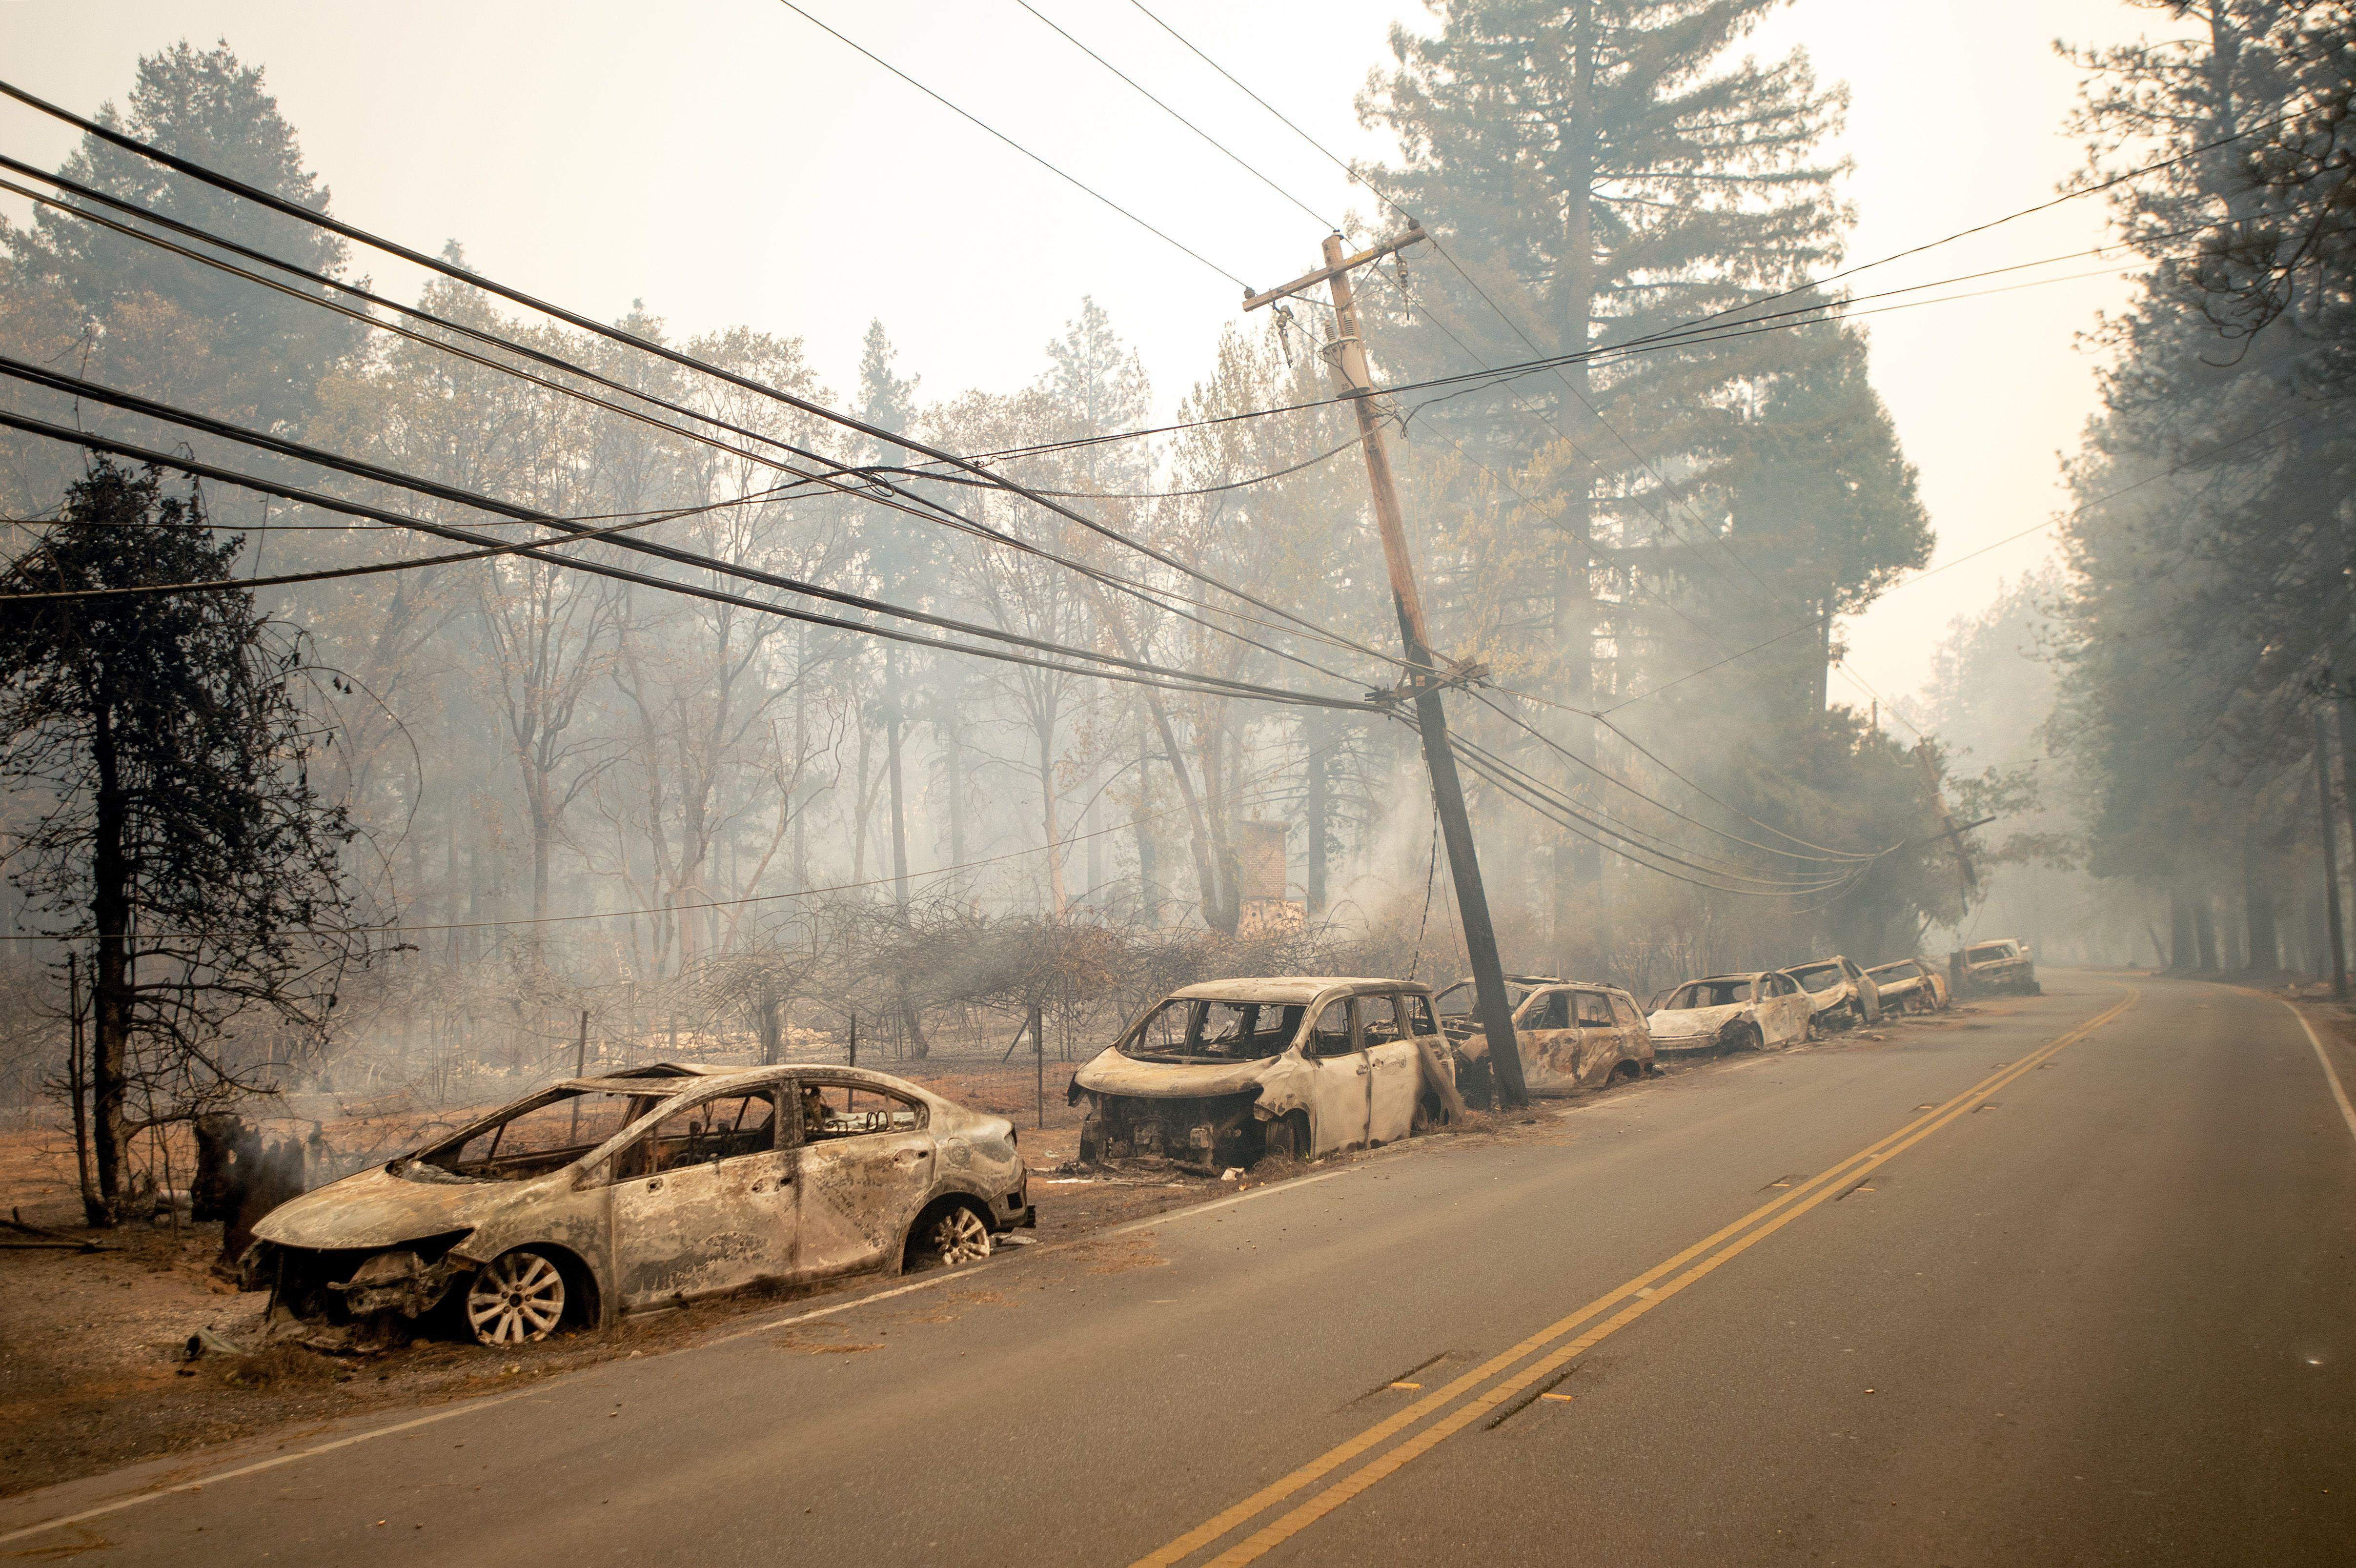 Abandoned and charred vehicles sit on the side of a road. An electrical pole leans dangerously. The air is hazy.